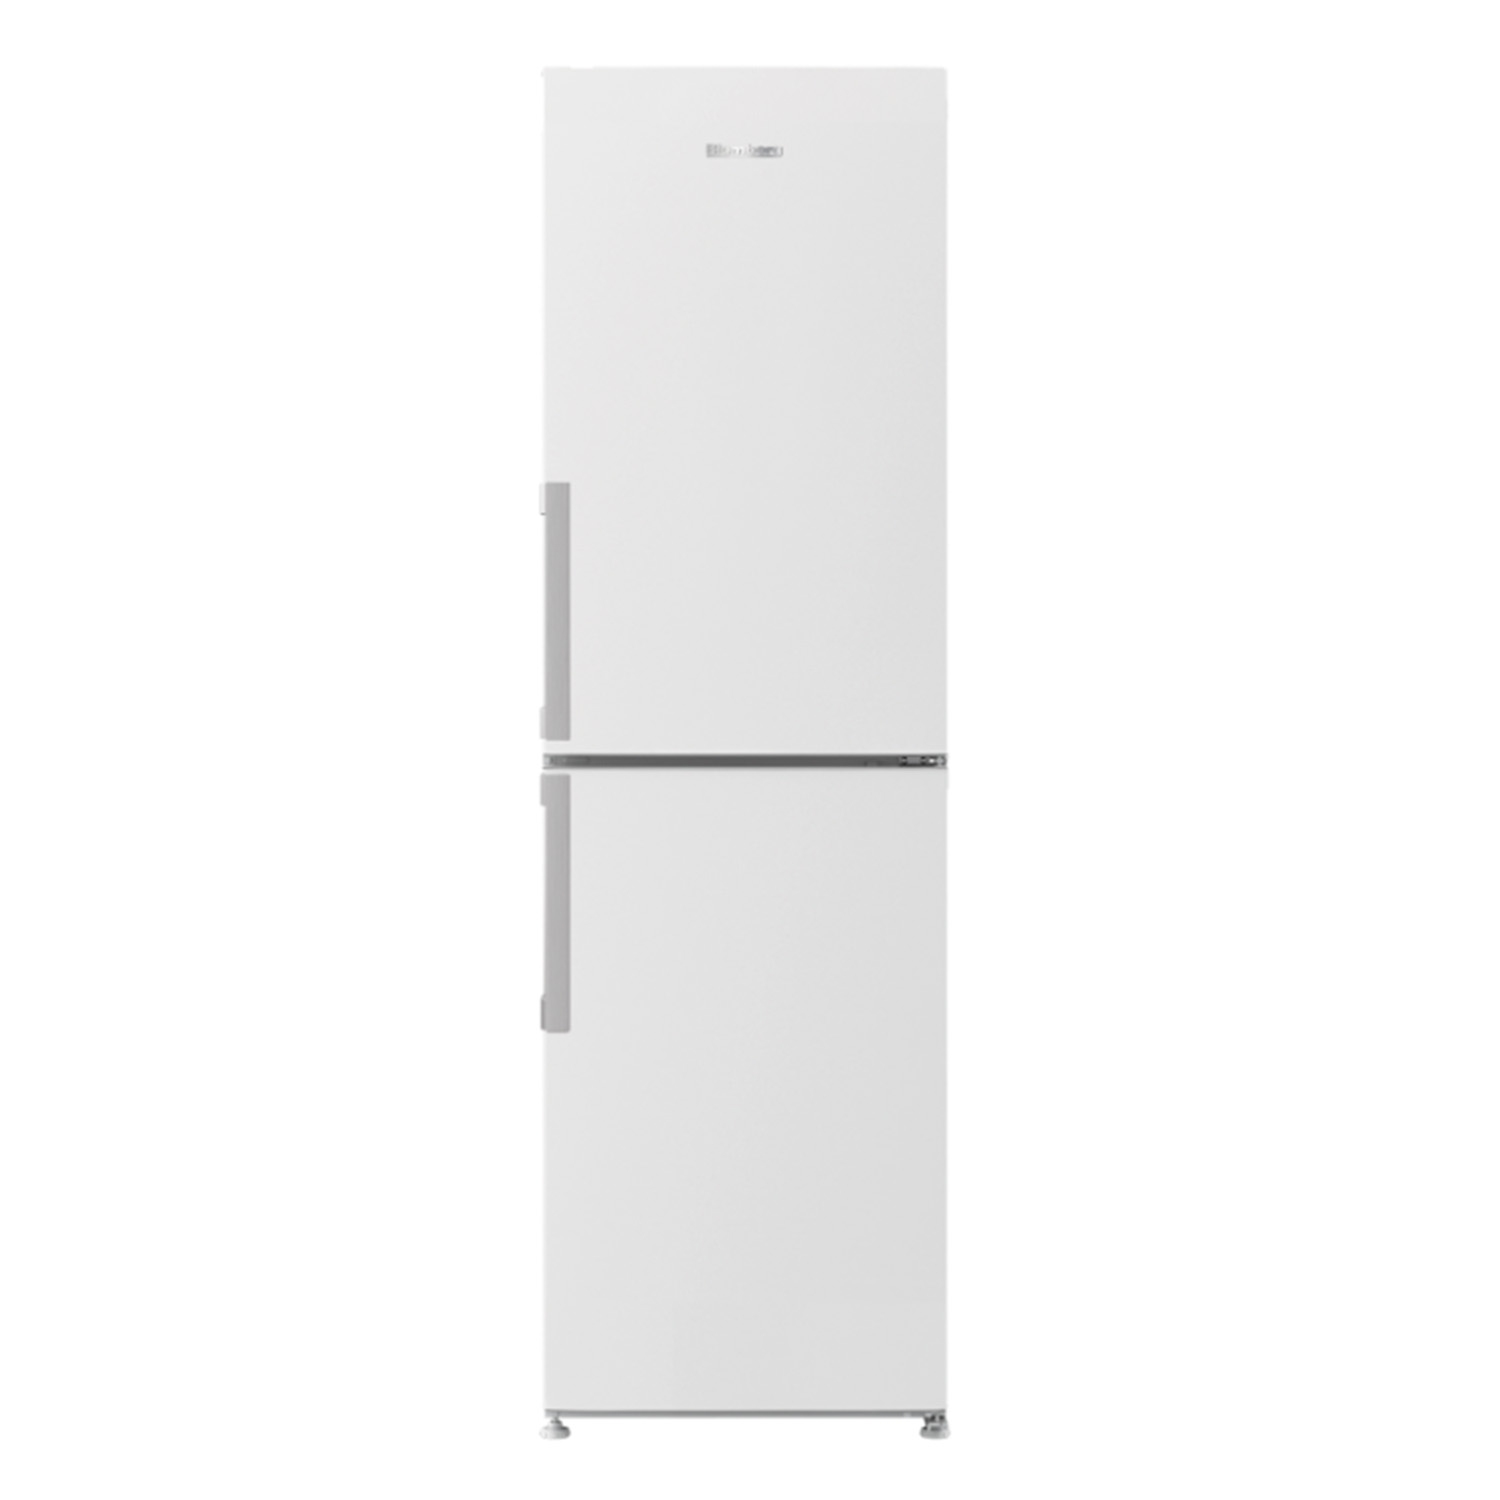 Blomberg Frost Free Fridge Freezer - White - A+ Energy Rated - 0